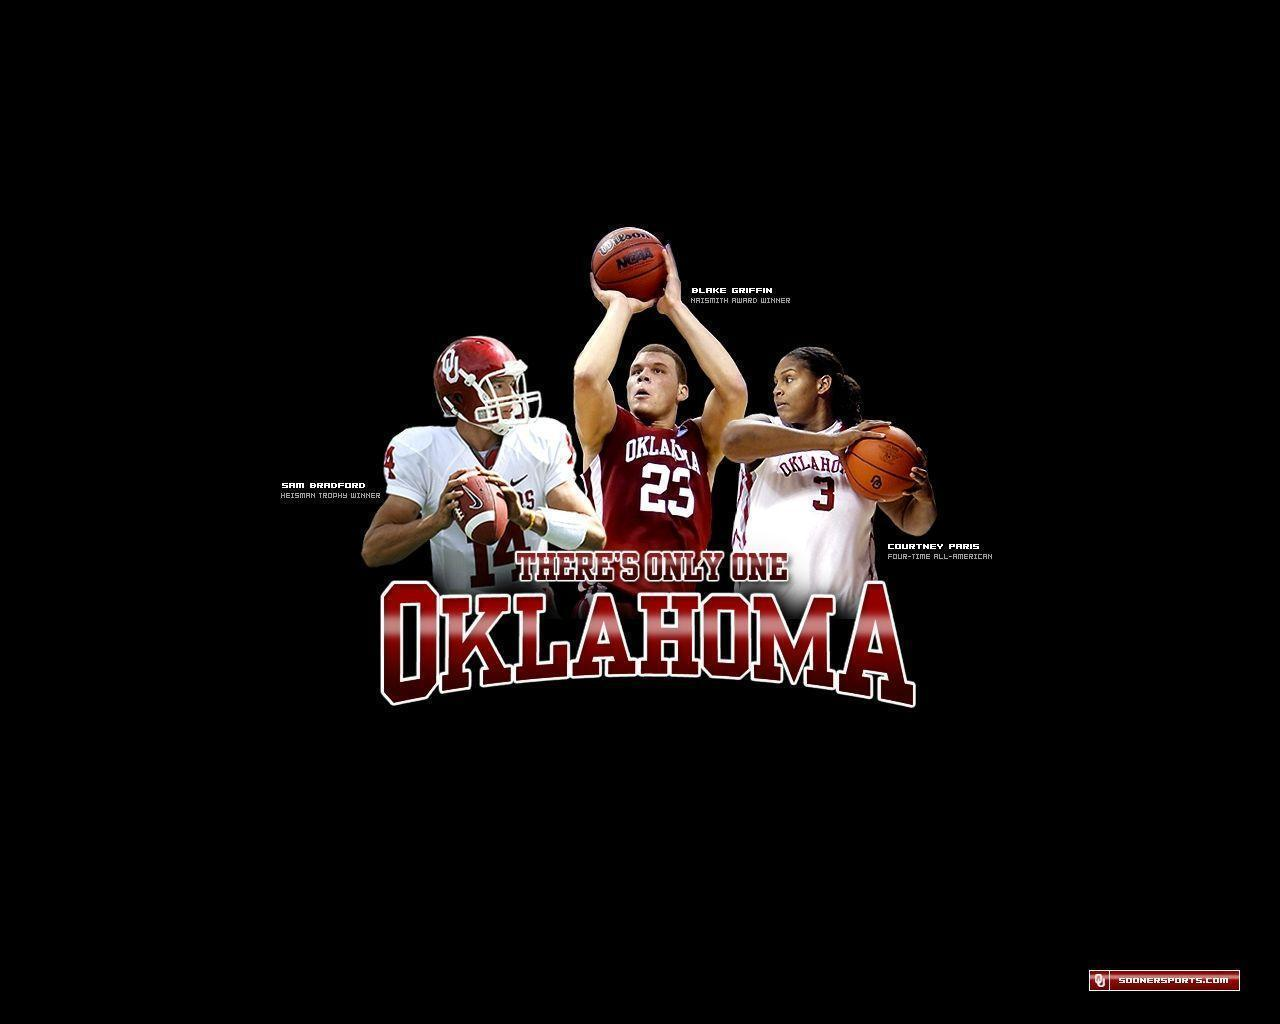 ou sooners wallpaper for laptop - photo #28